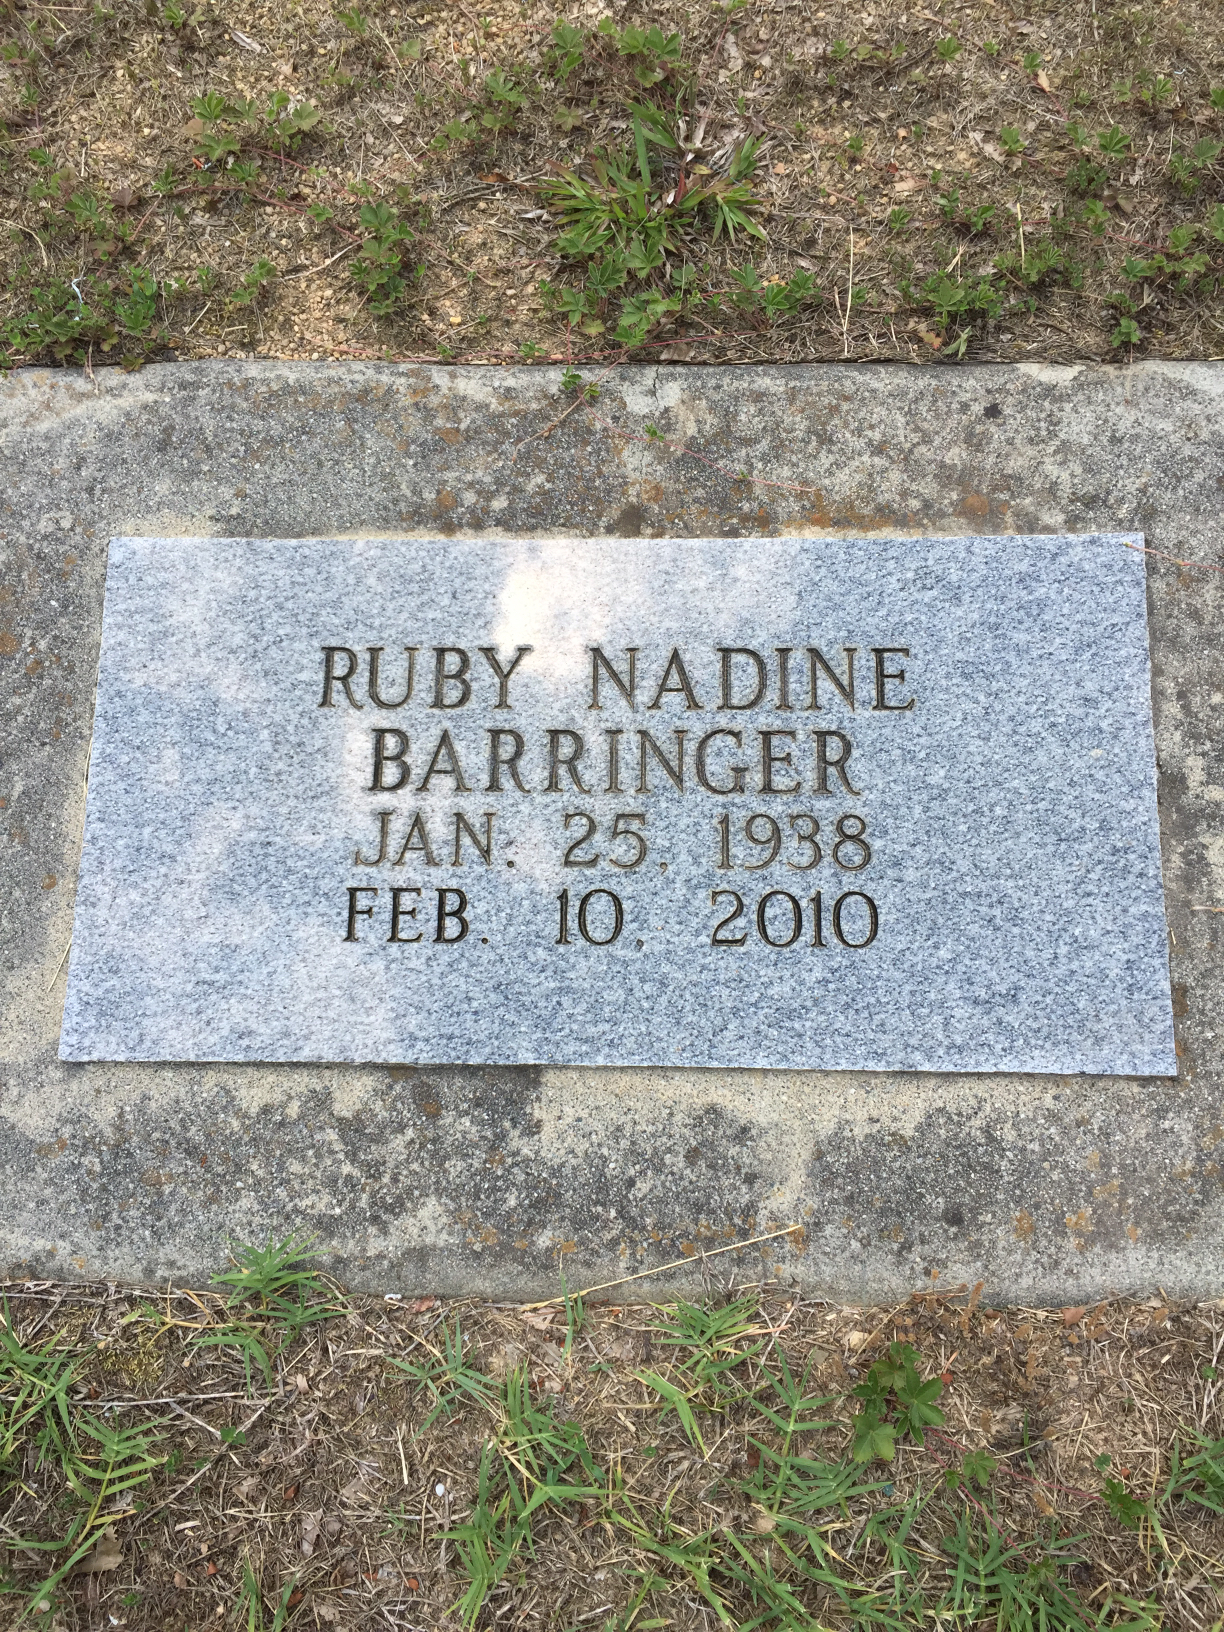 Ruby Nadine Barringer